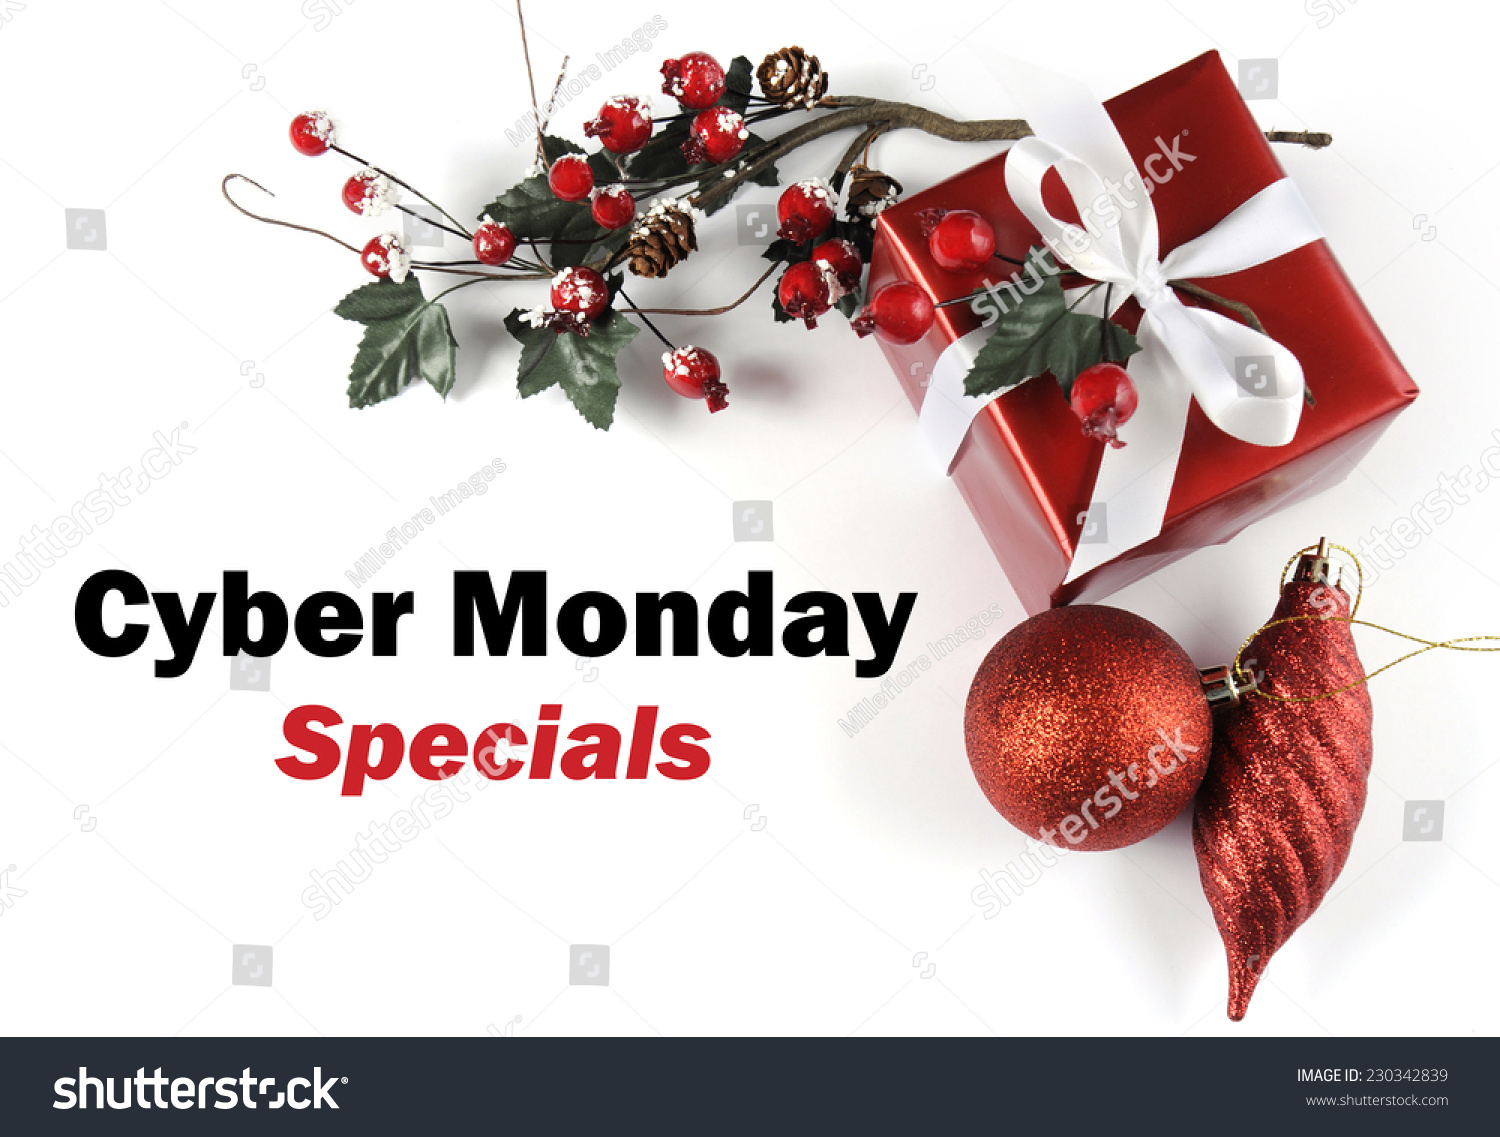 cyber monday specials sale message greeting with christmas gift and decorations on white background - Cyber Monday Christmas Decorations